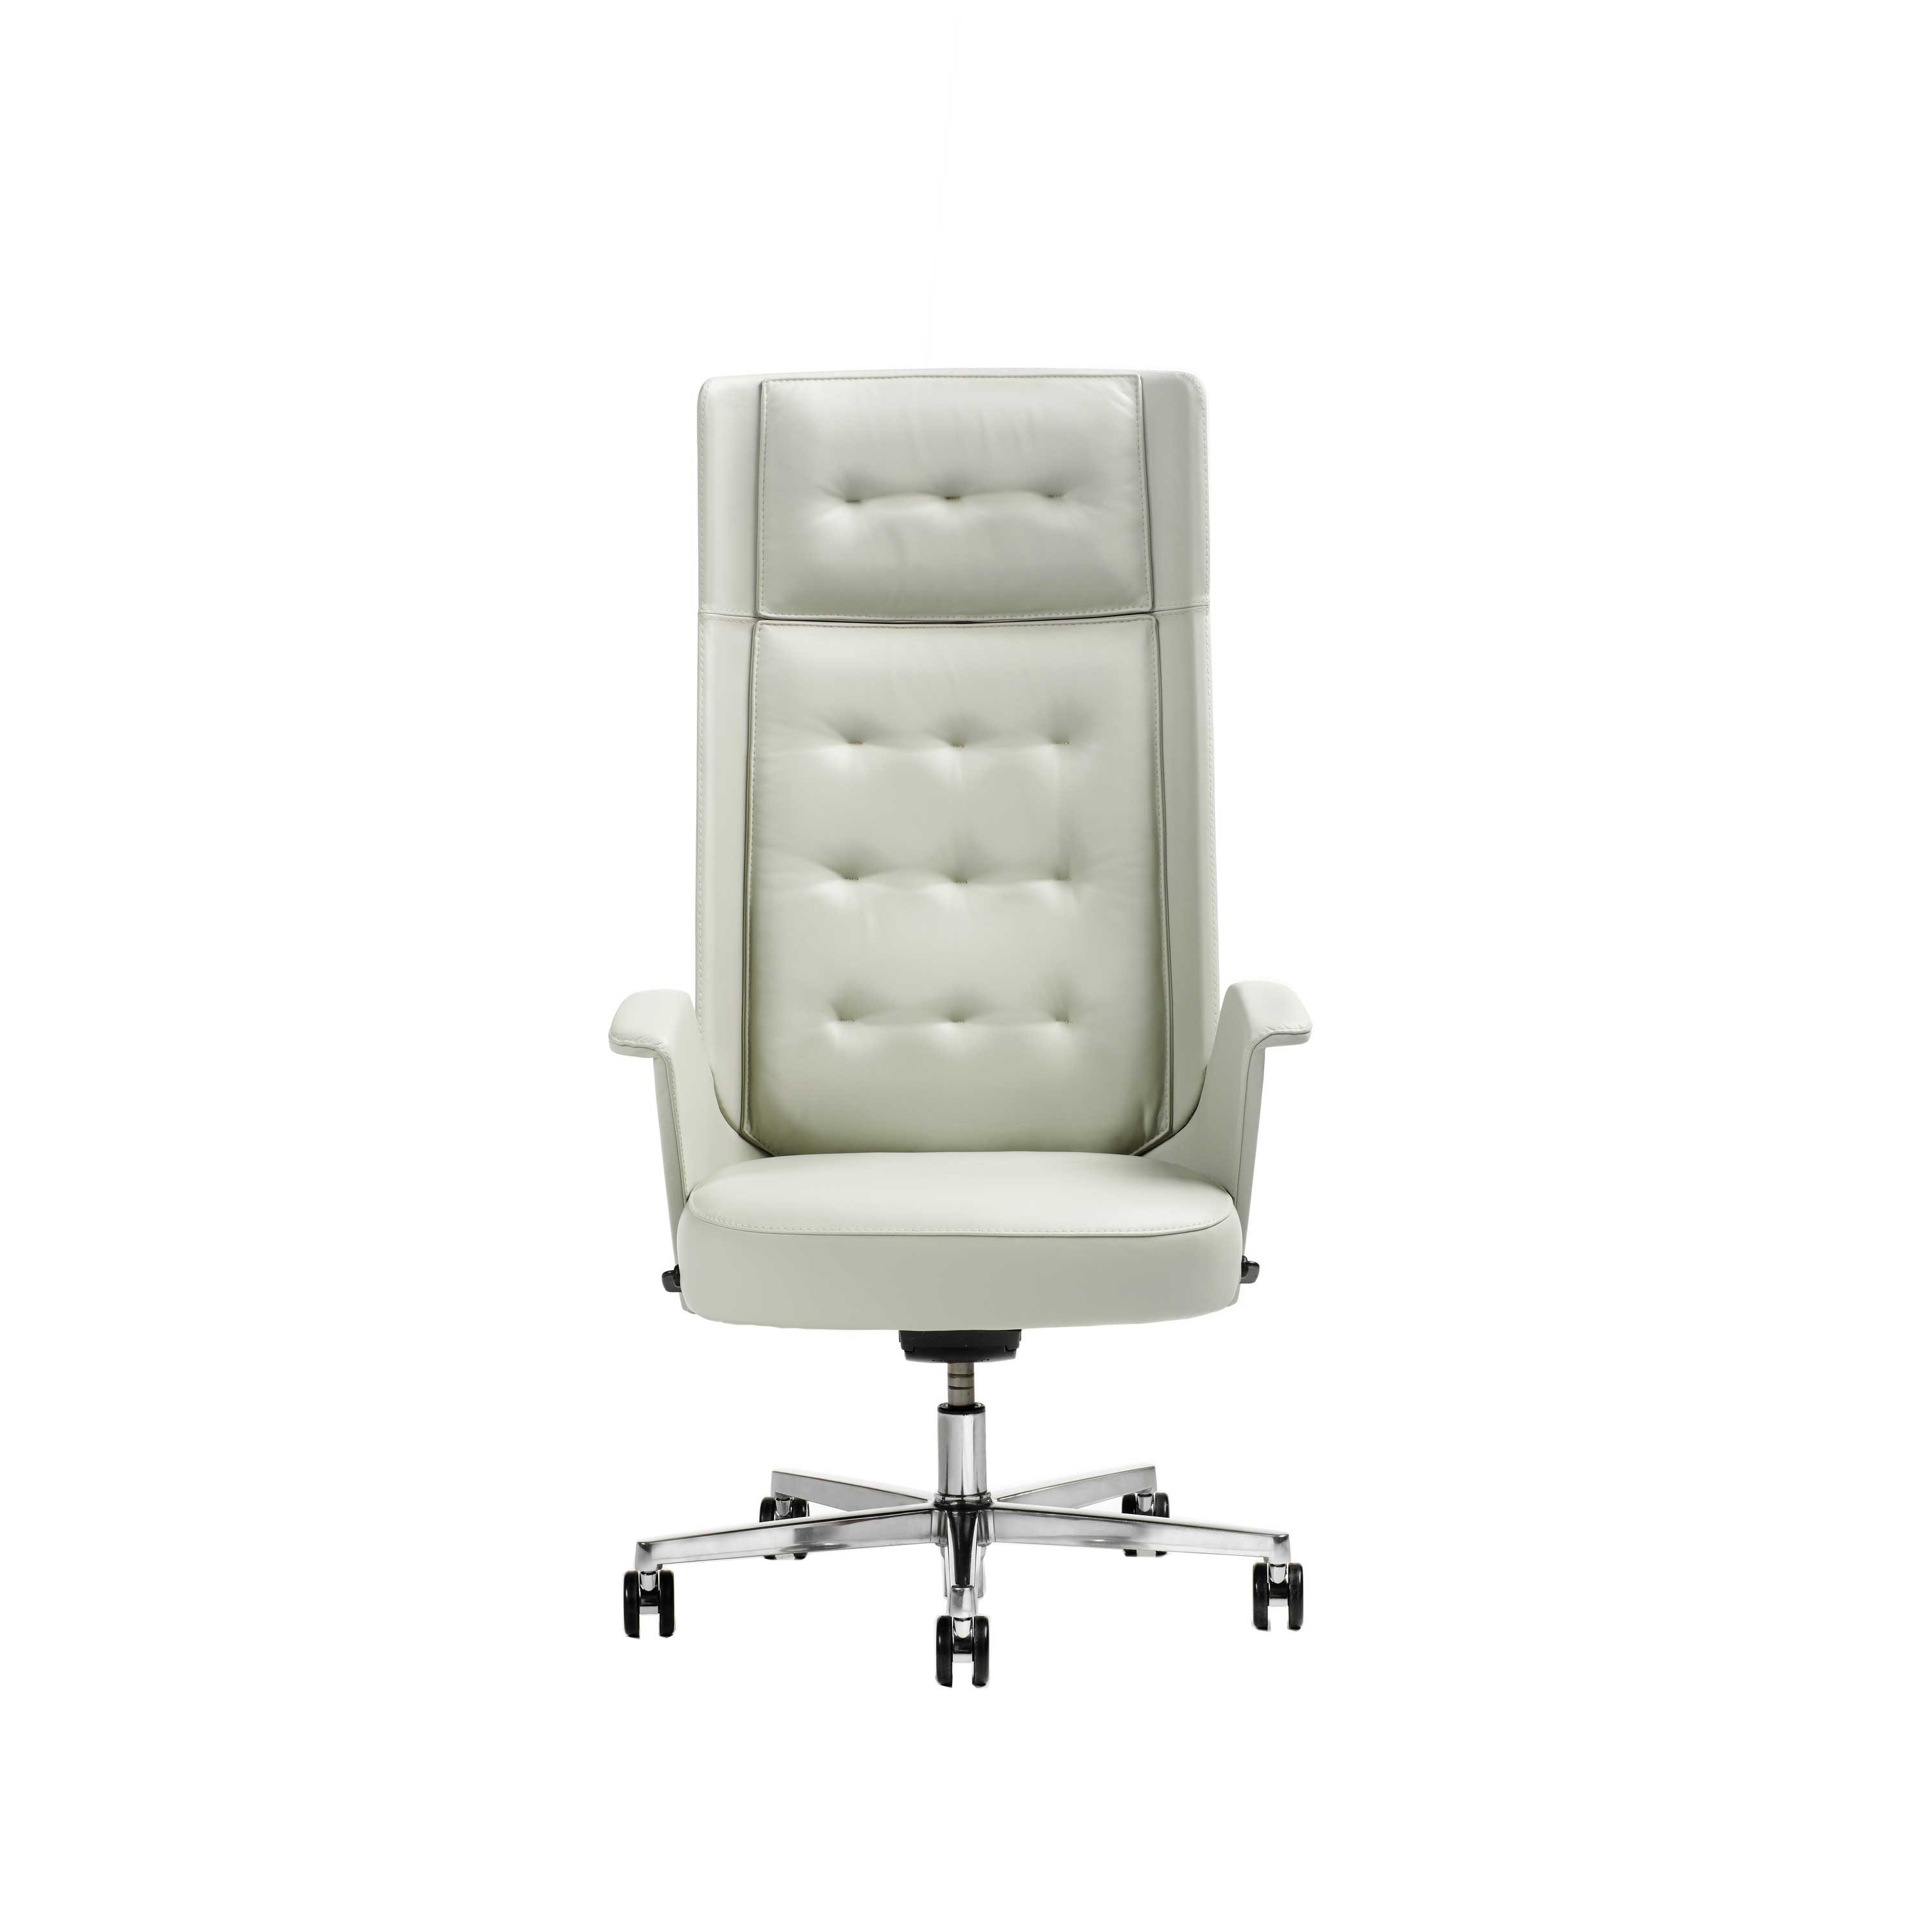 14S_Estel_Comfort&Relax_Office-Chair_Embrasse